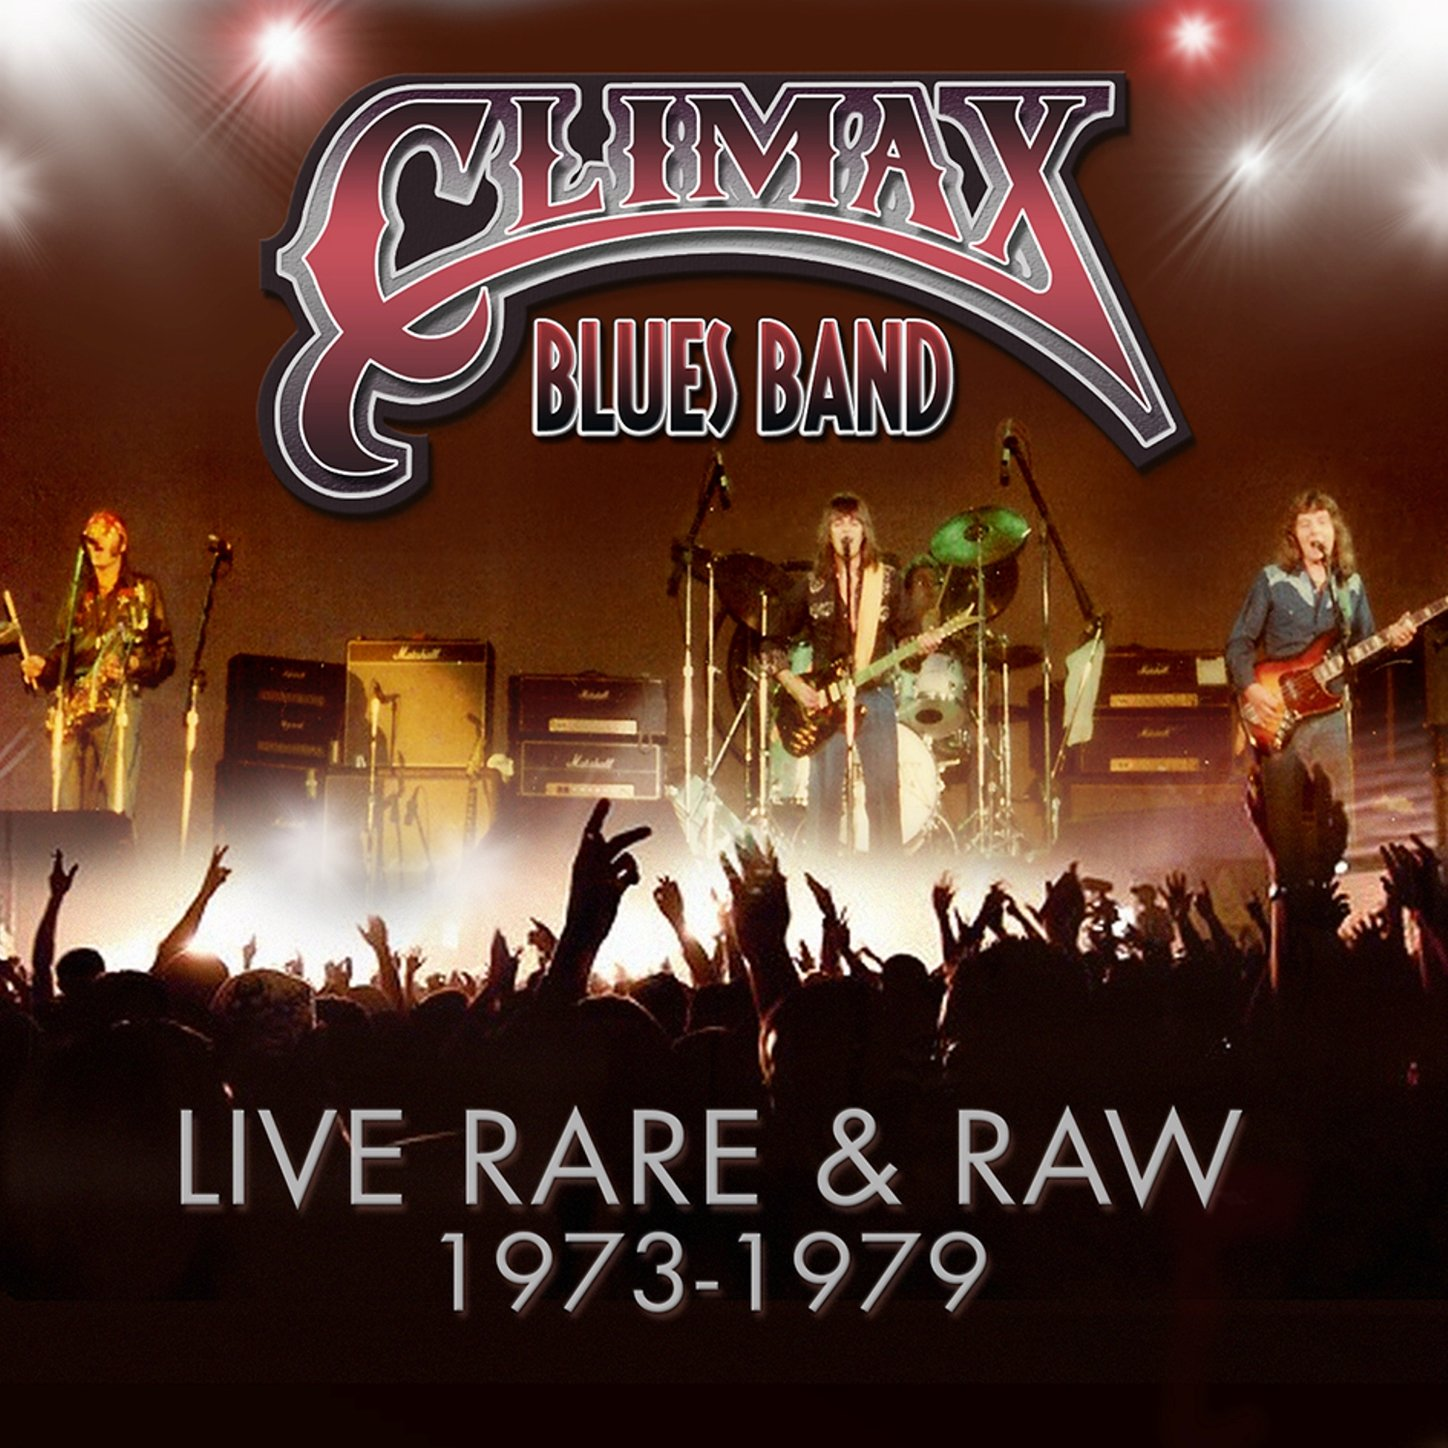 Climax Blues Band – Live Rare And Raw 1973-1979 (2014) [FLAC]